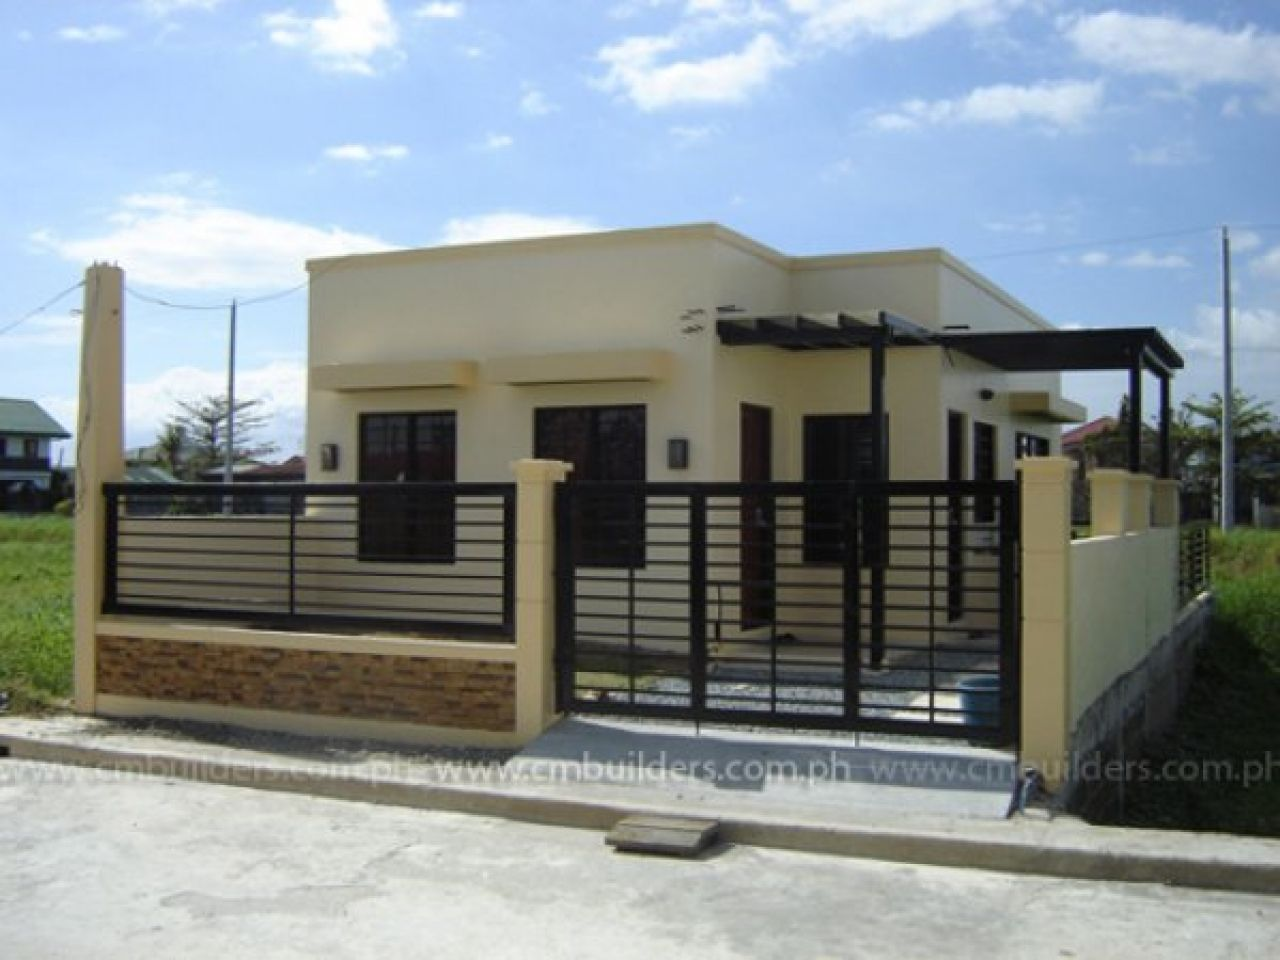 e1e9bc0c229aedbcb6b63e4ce713ce7b - 35+ Gate Design For Small House Philippines Pictures